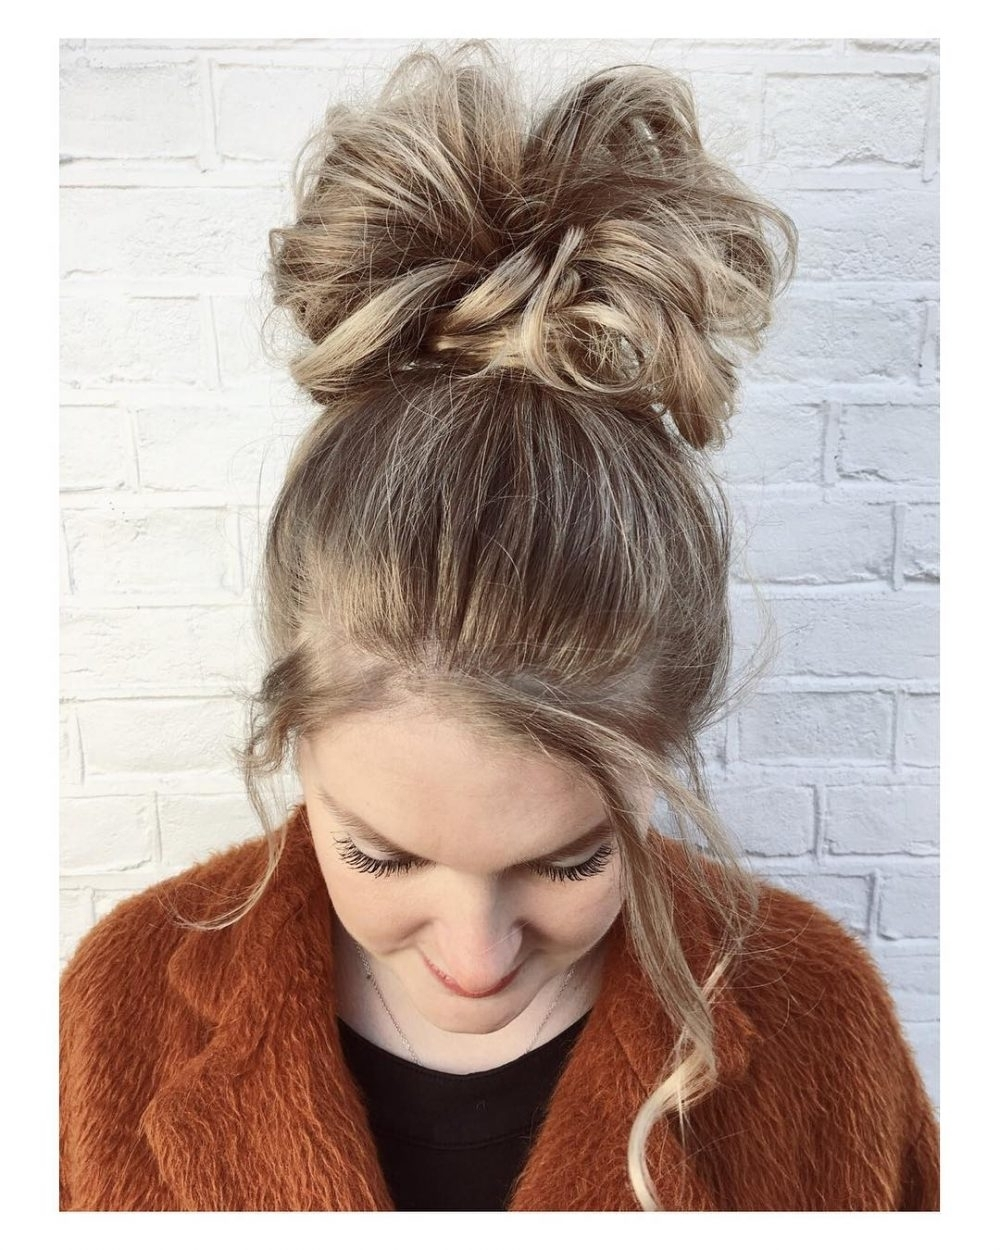 34 Easy Updos For Long Hair Trending For 2018 Inside Pretty Updo Hairstyles For Long Hair (View 6 of 15)